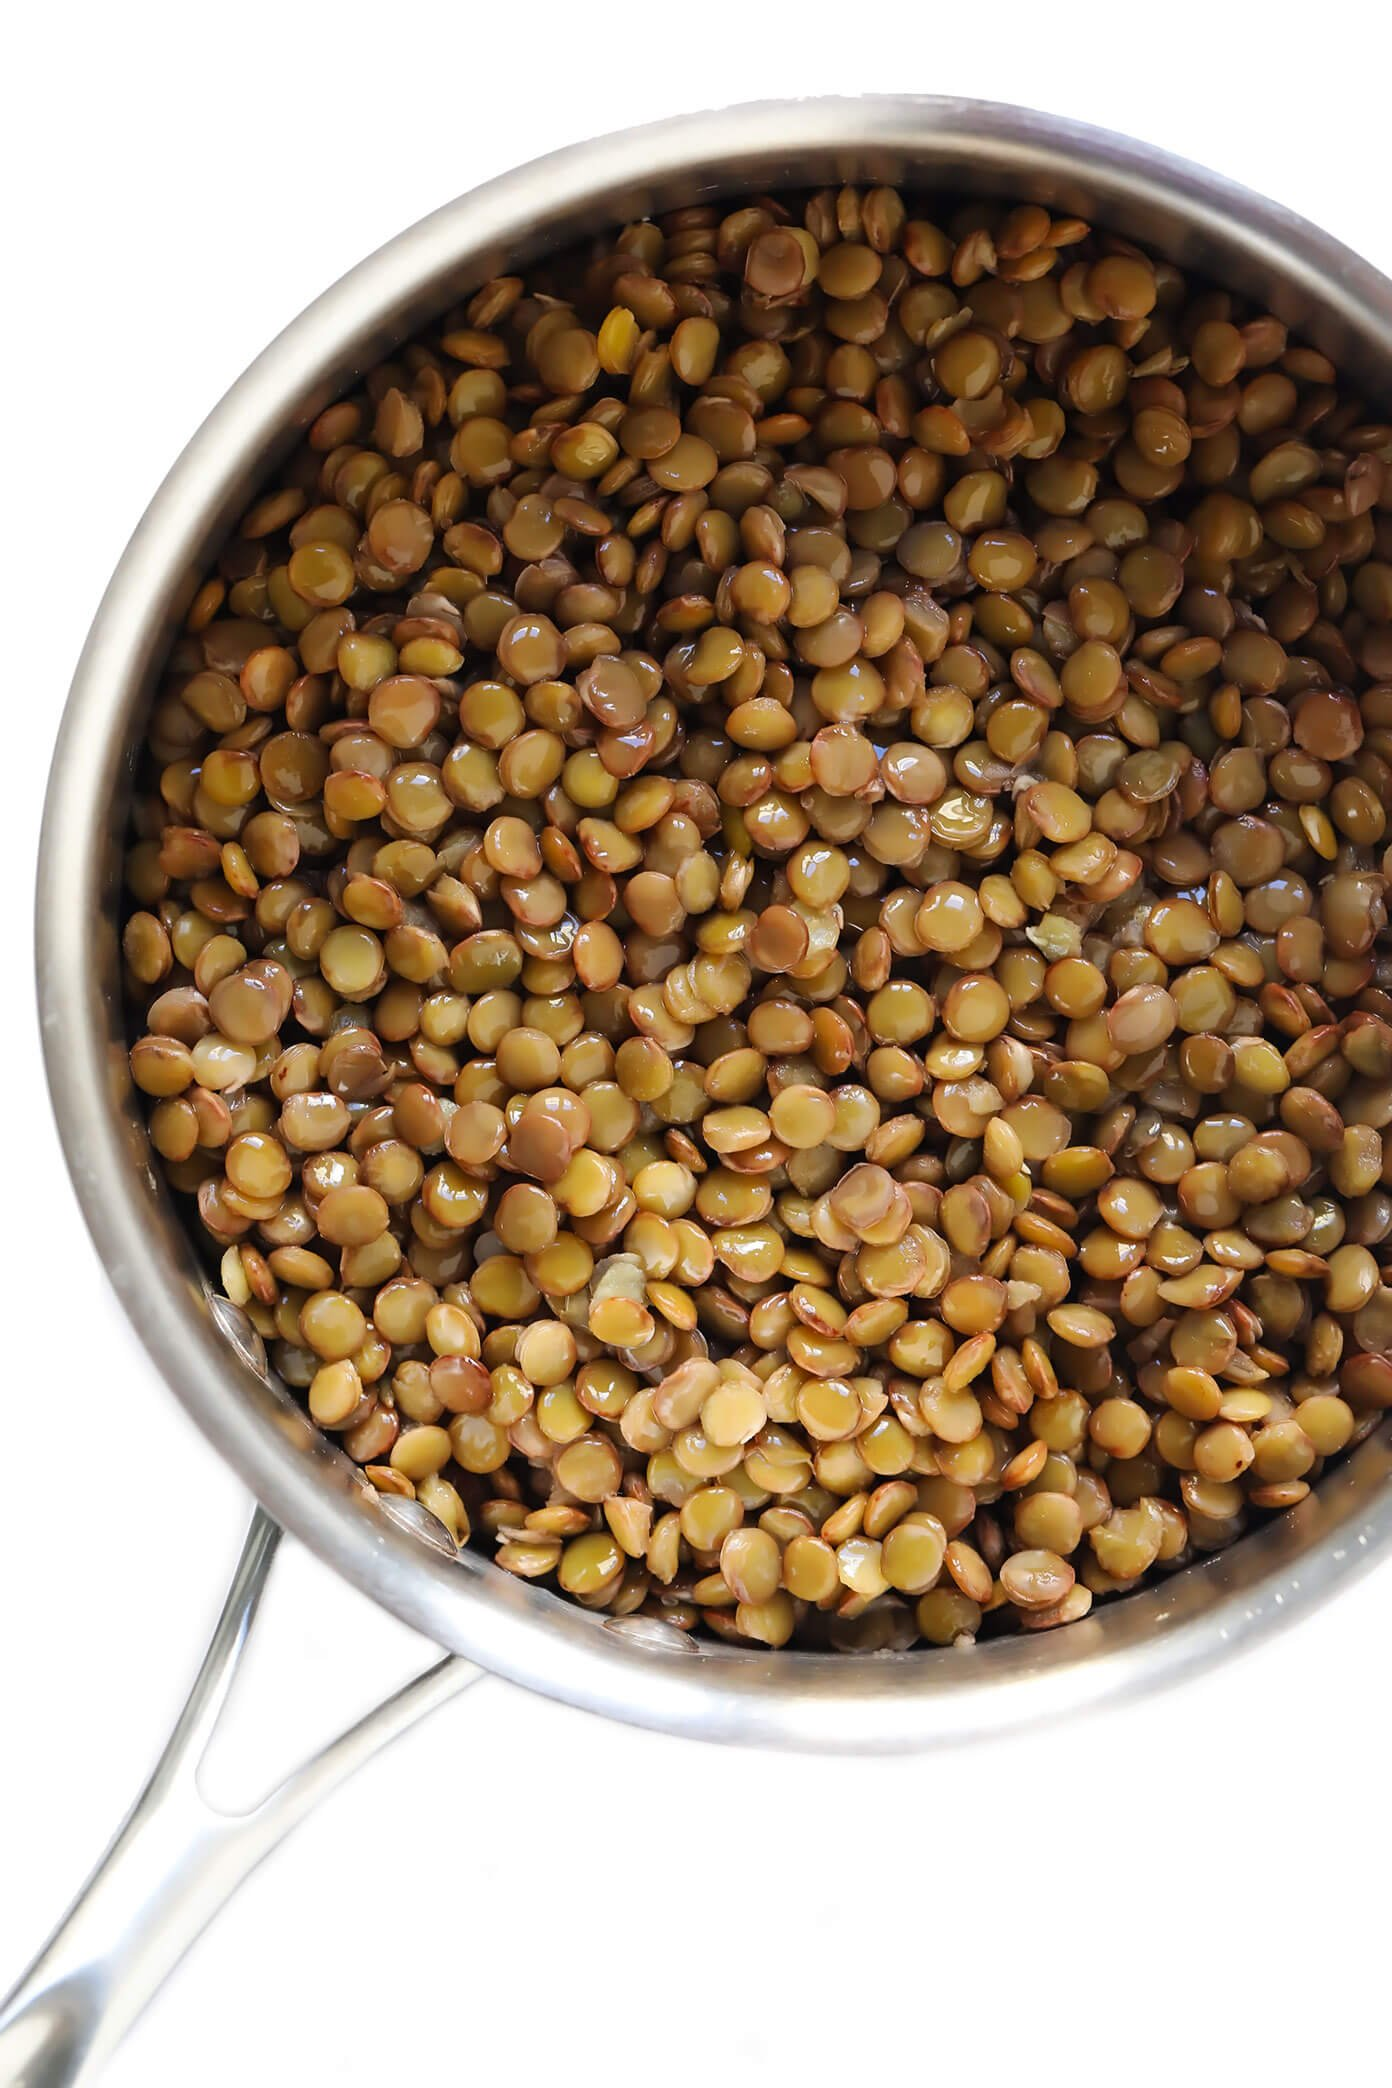 How To Make Lentils (Recipe and Tips)